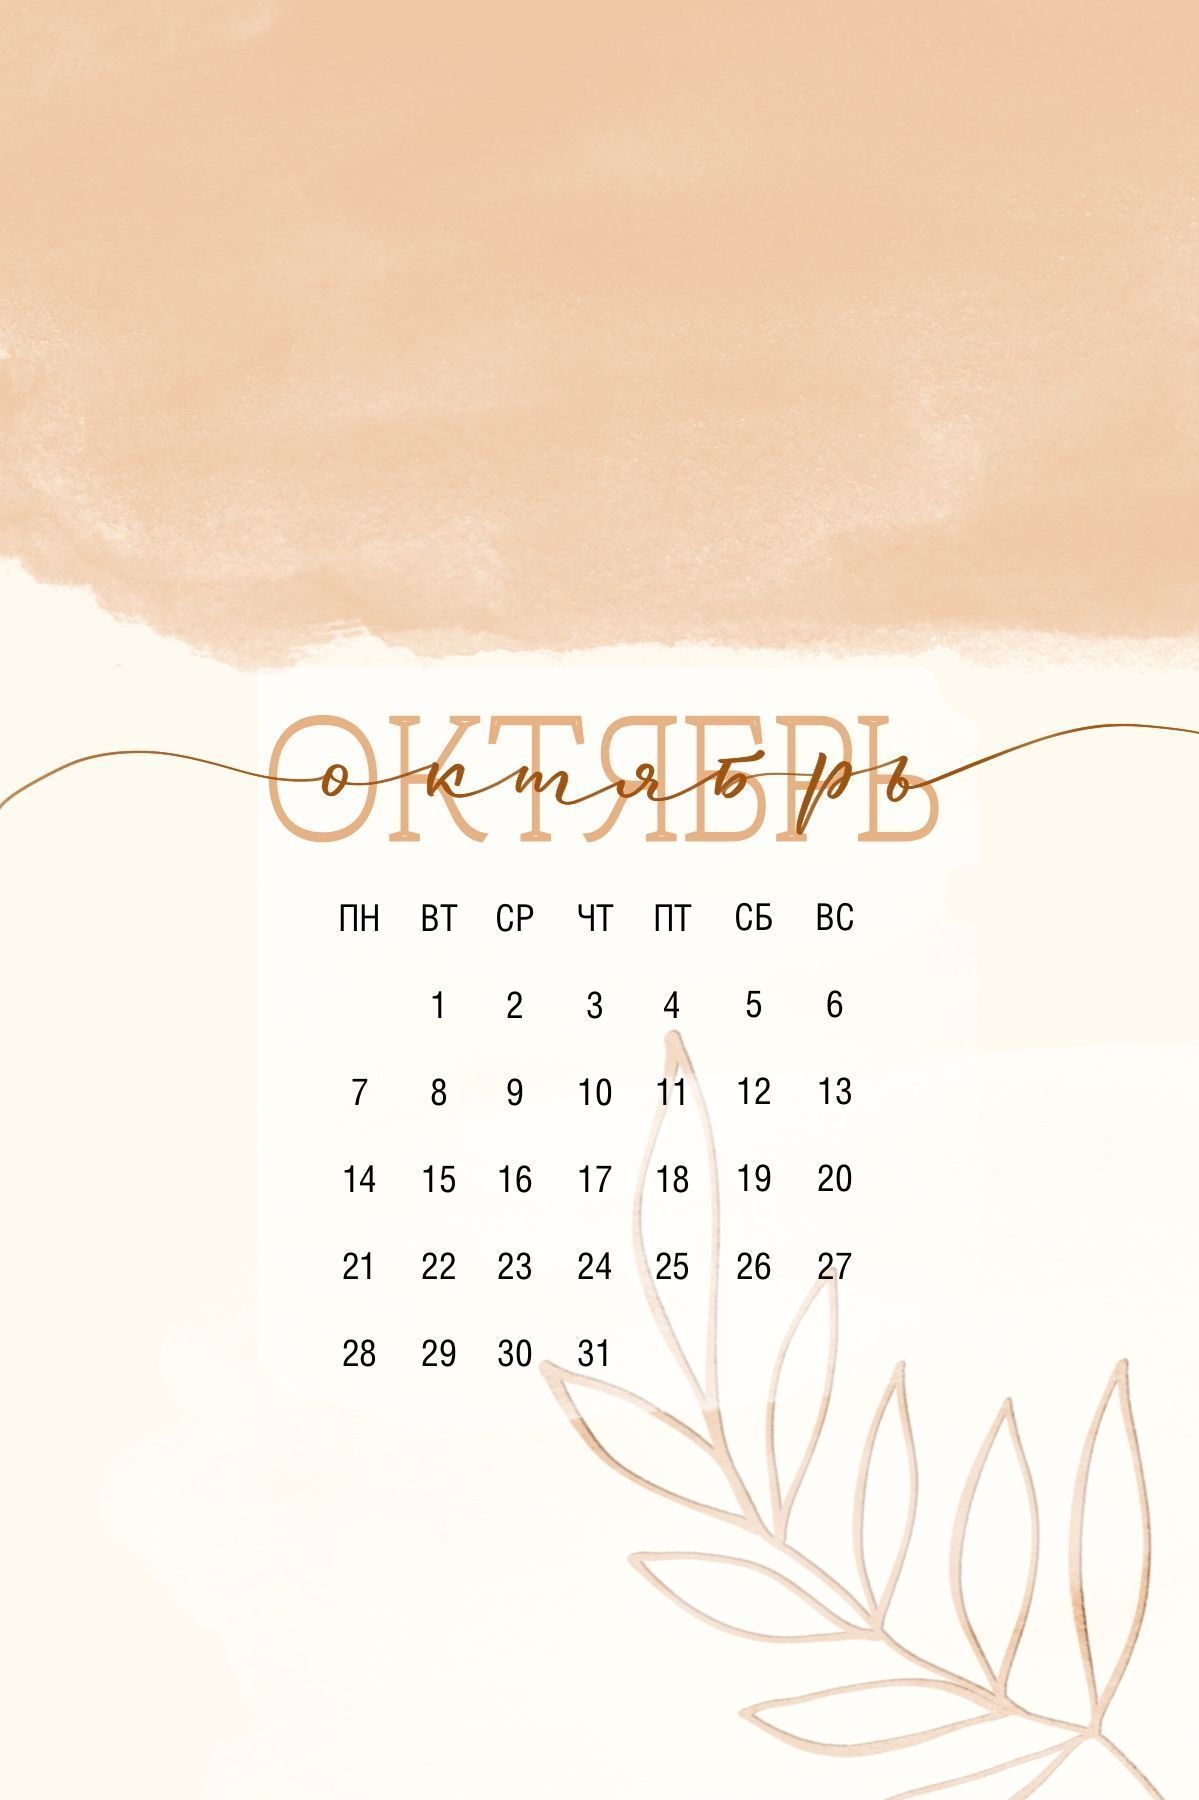 Lettering calendar iPhone wallpaper fall October  #octoberwallpaper iPhone wallpaper lettering calendar #lettering #calendar #october #wallpaper #walpaperiphone #iphonewallpaper #calendarwallpaper #октябрь #обоинателефон #леттеринг #арт #календарь #octoberwallpaperiphone Lettering calendar iPhone wallpaper fall October  #octoberwallpaper iPhone wallpaper lettering calendar #lettering #calendar #october #wallpaper #walpaperiphone #iphonewallpaper #calendar #falliphonewallpaper